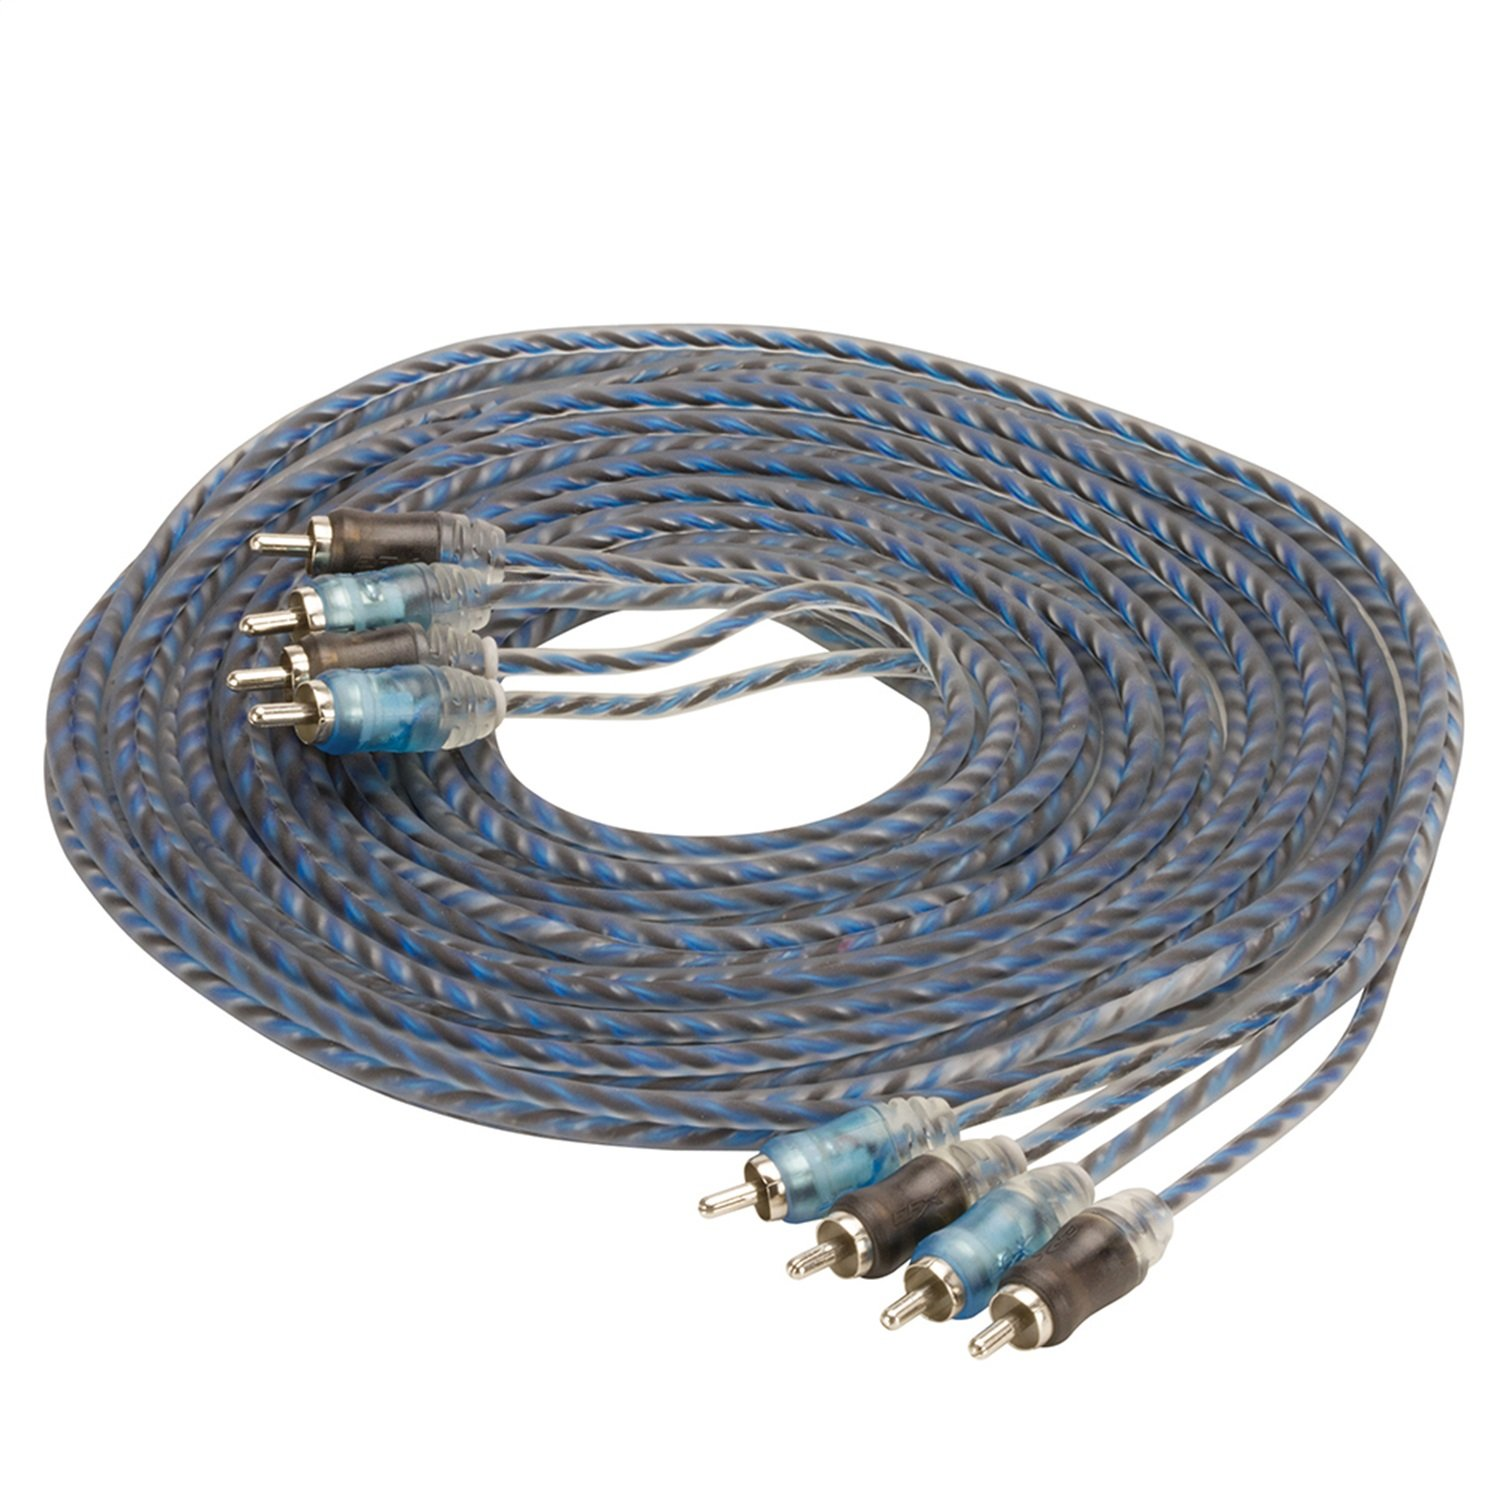 SCOSCHE EFXRP412 12' Performance Series 4-Channel Twisted RCA Cable